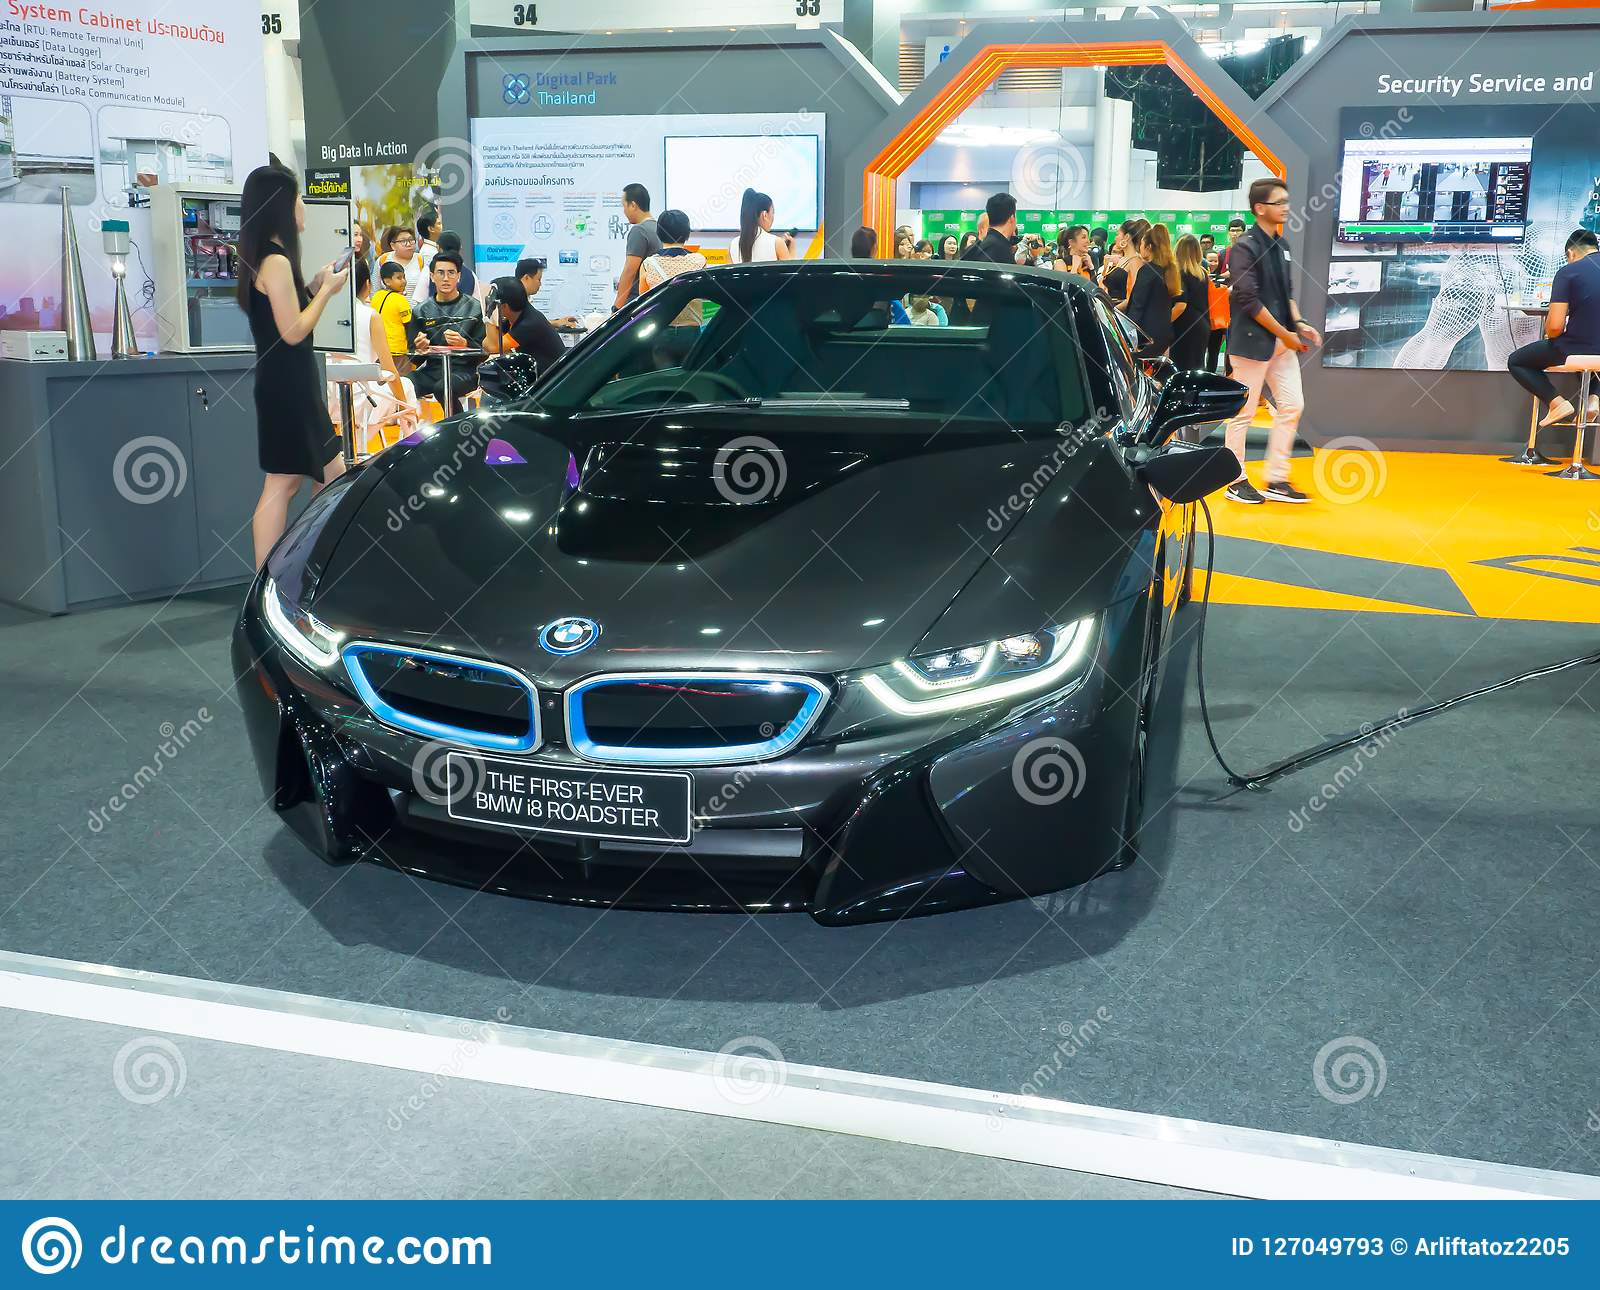 The Bmw I8 Is A Plug In Hybrid Sports Car Developed By Bmw In Black